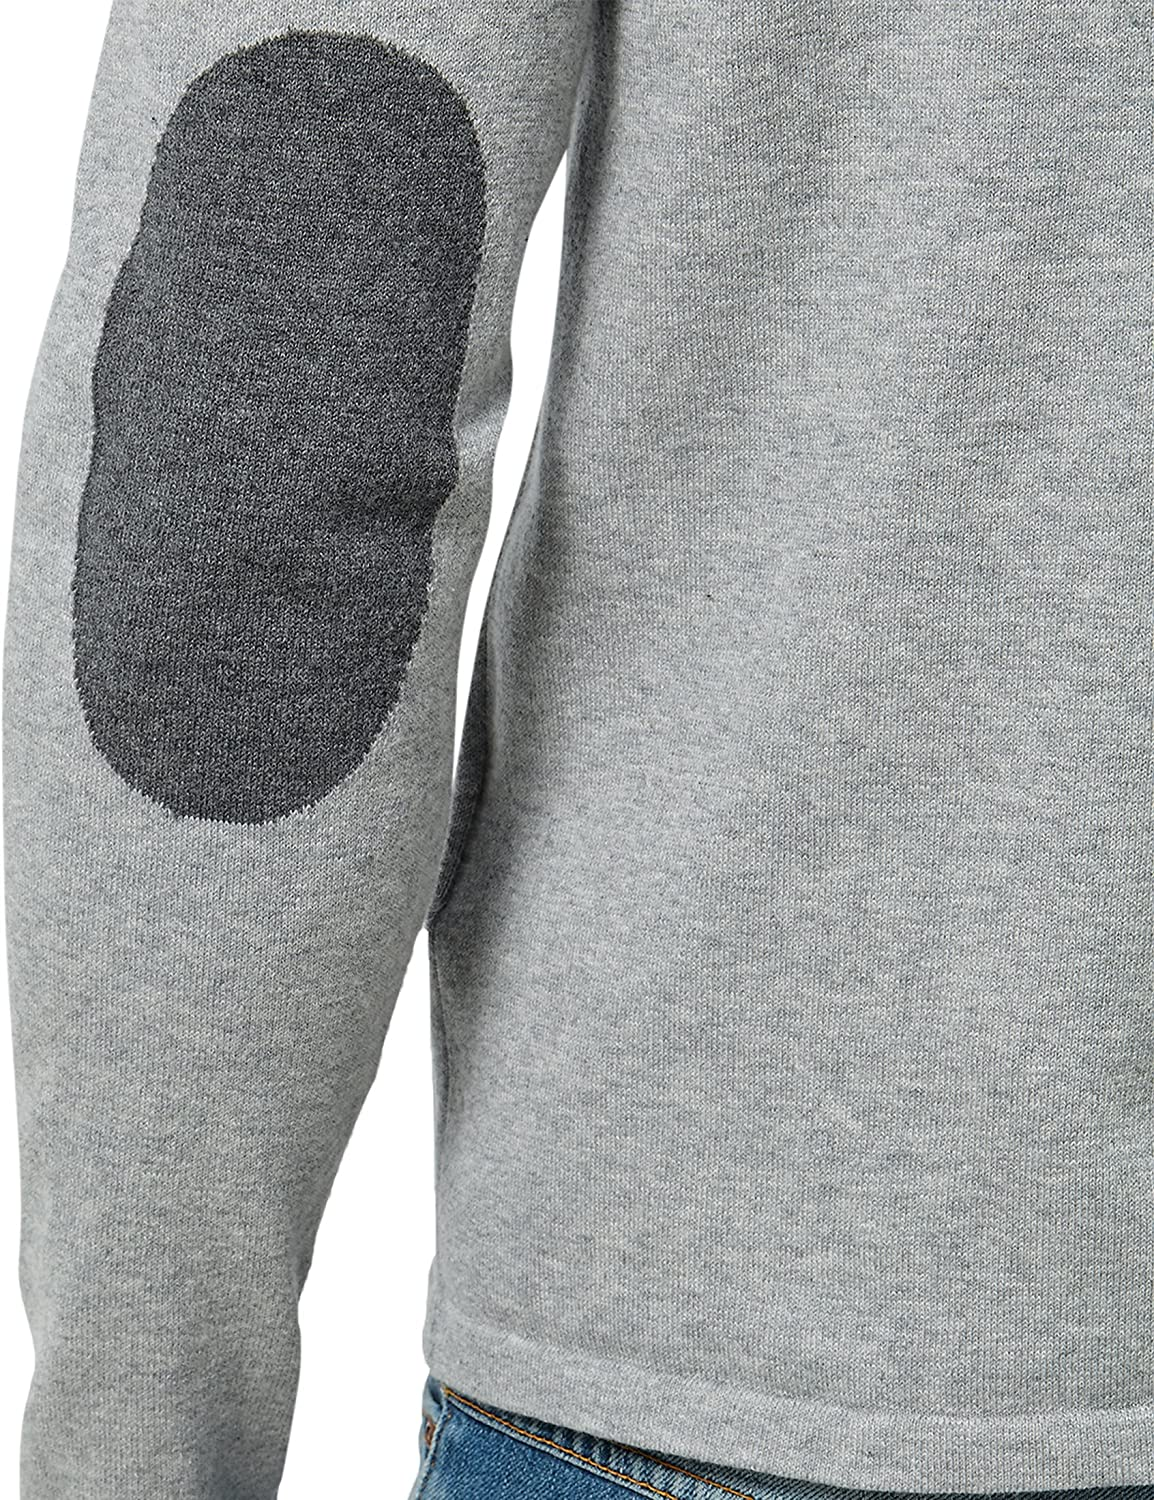 James Tyler Men's Jumper with Round Neckline, Button Placket and Contrasting Coloured Elbow Patches